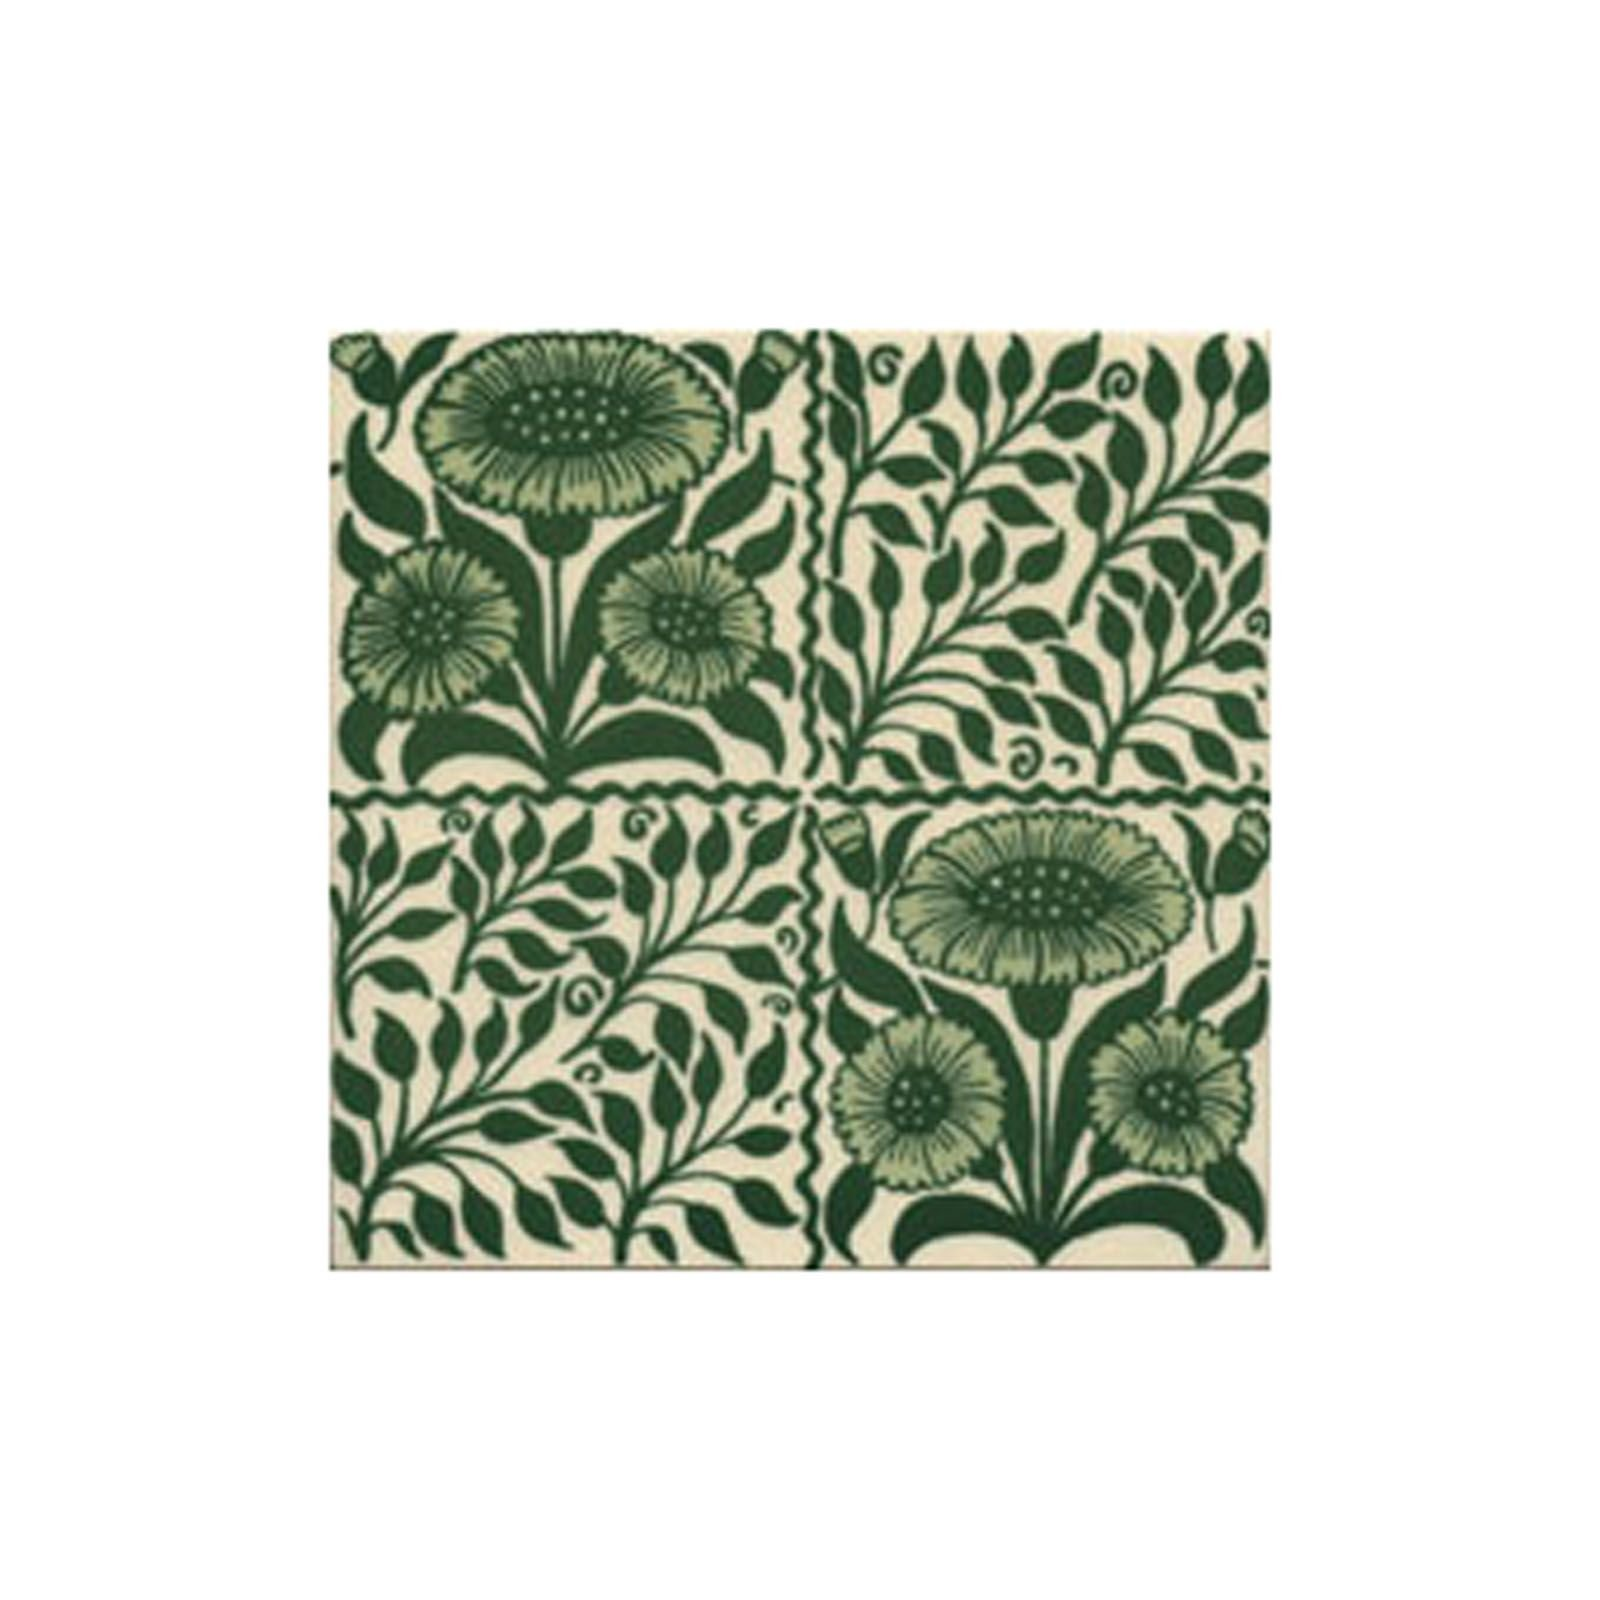 Decorative Wall Tiles For Outside : Victorian oreton green decorative tiles mm